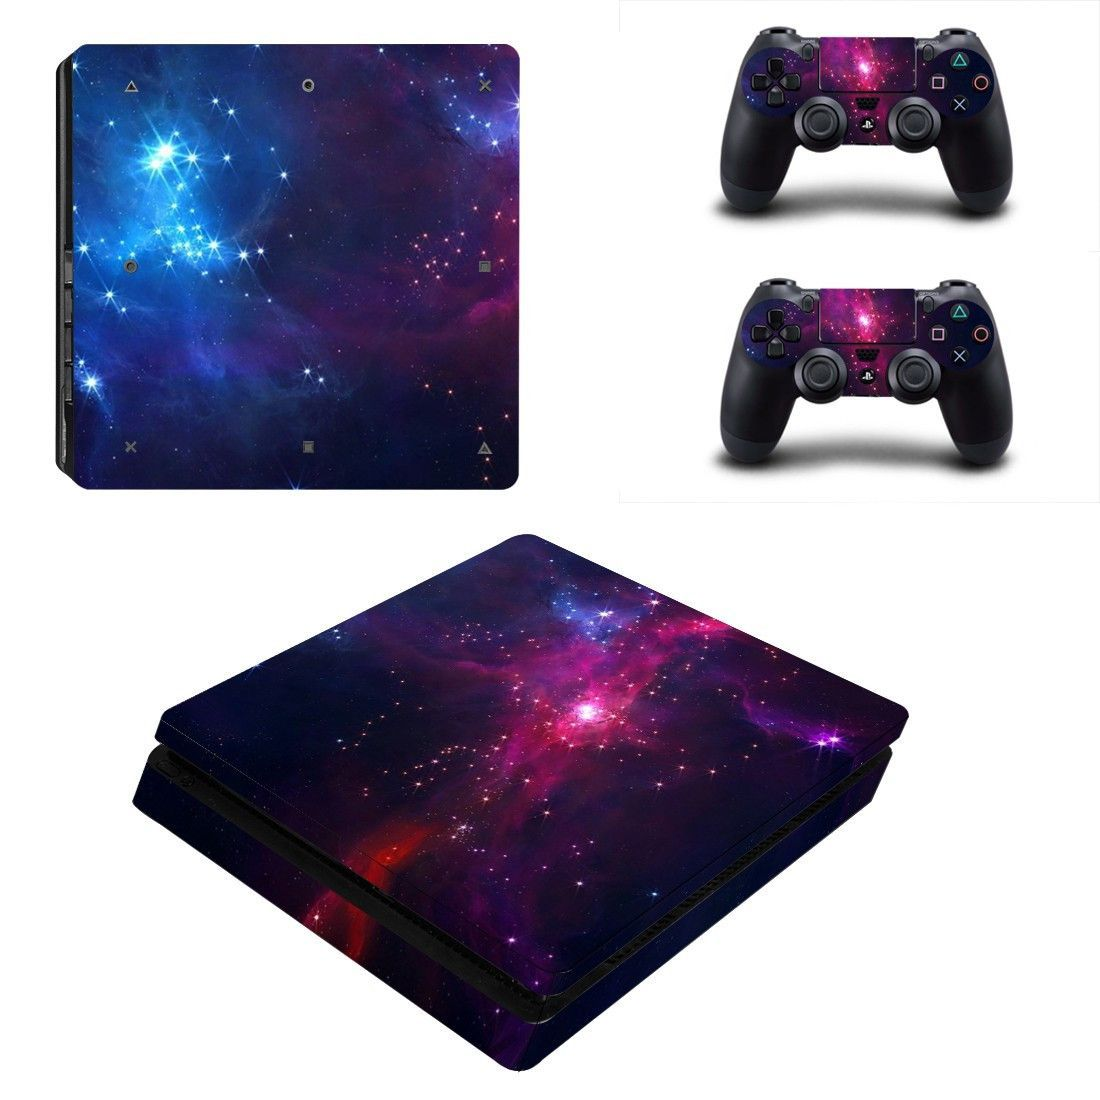 Open Galaxy With Star Ps4 Slim Skin Decal For Console And 2